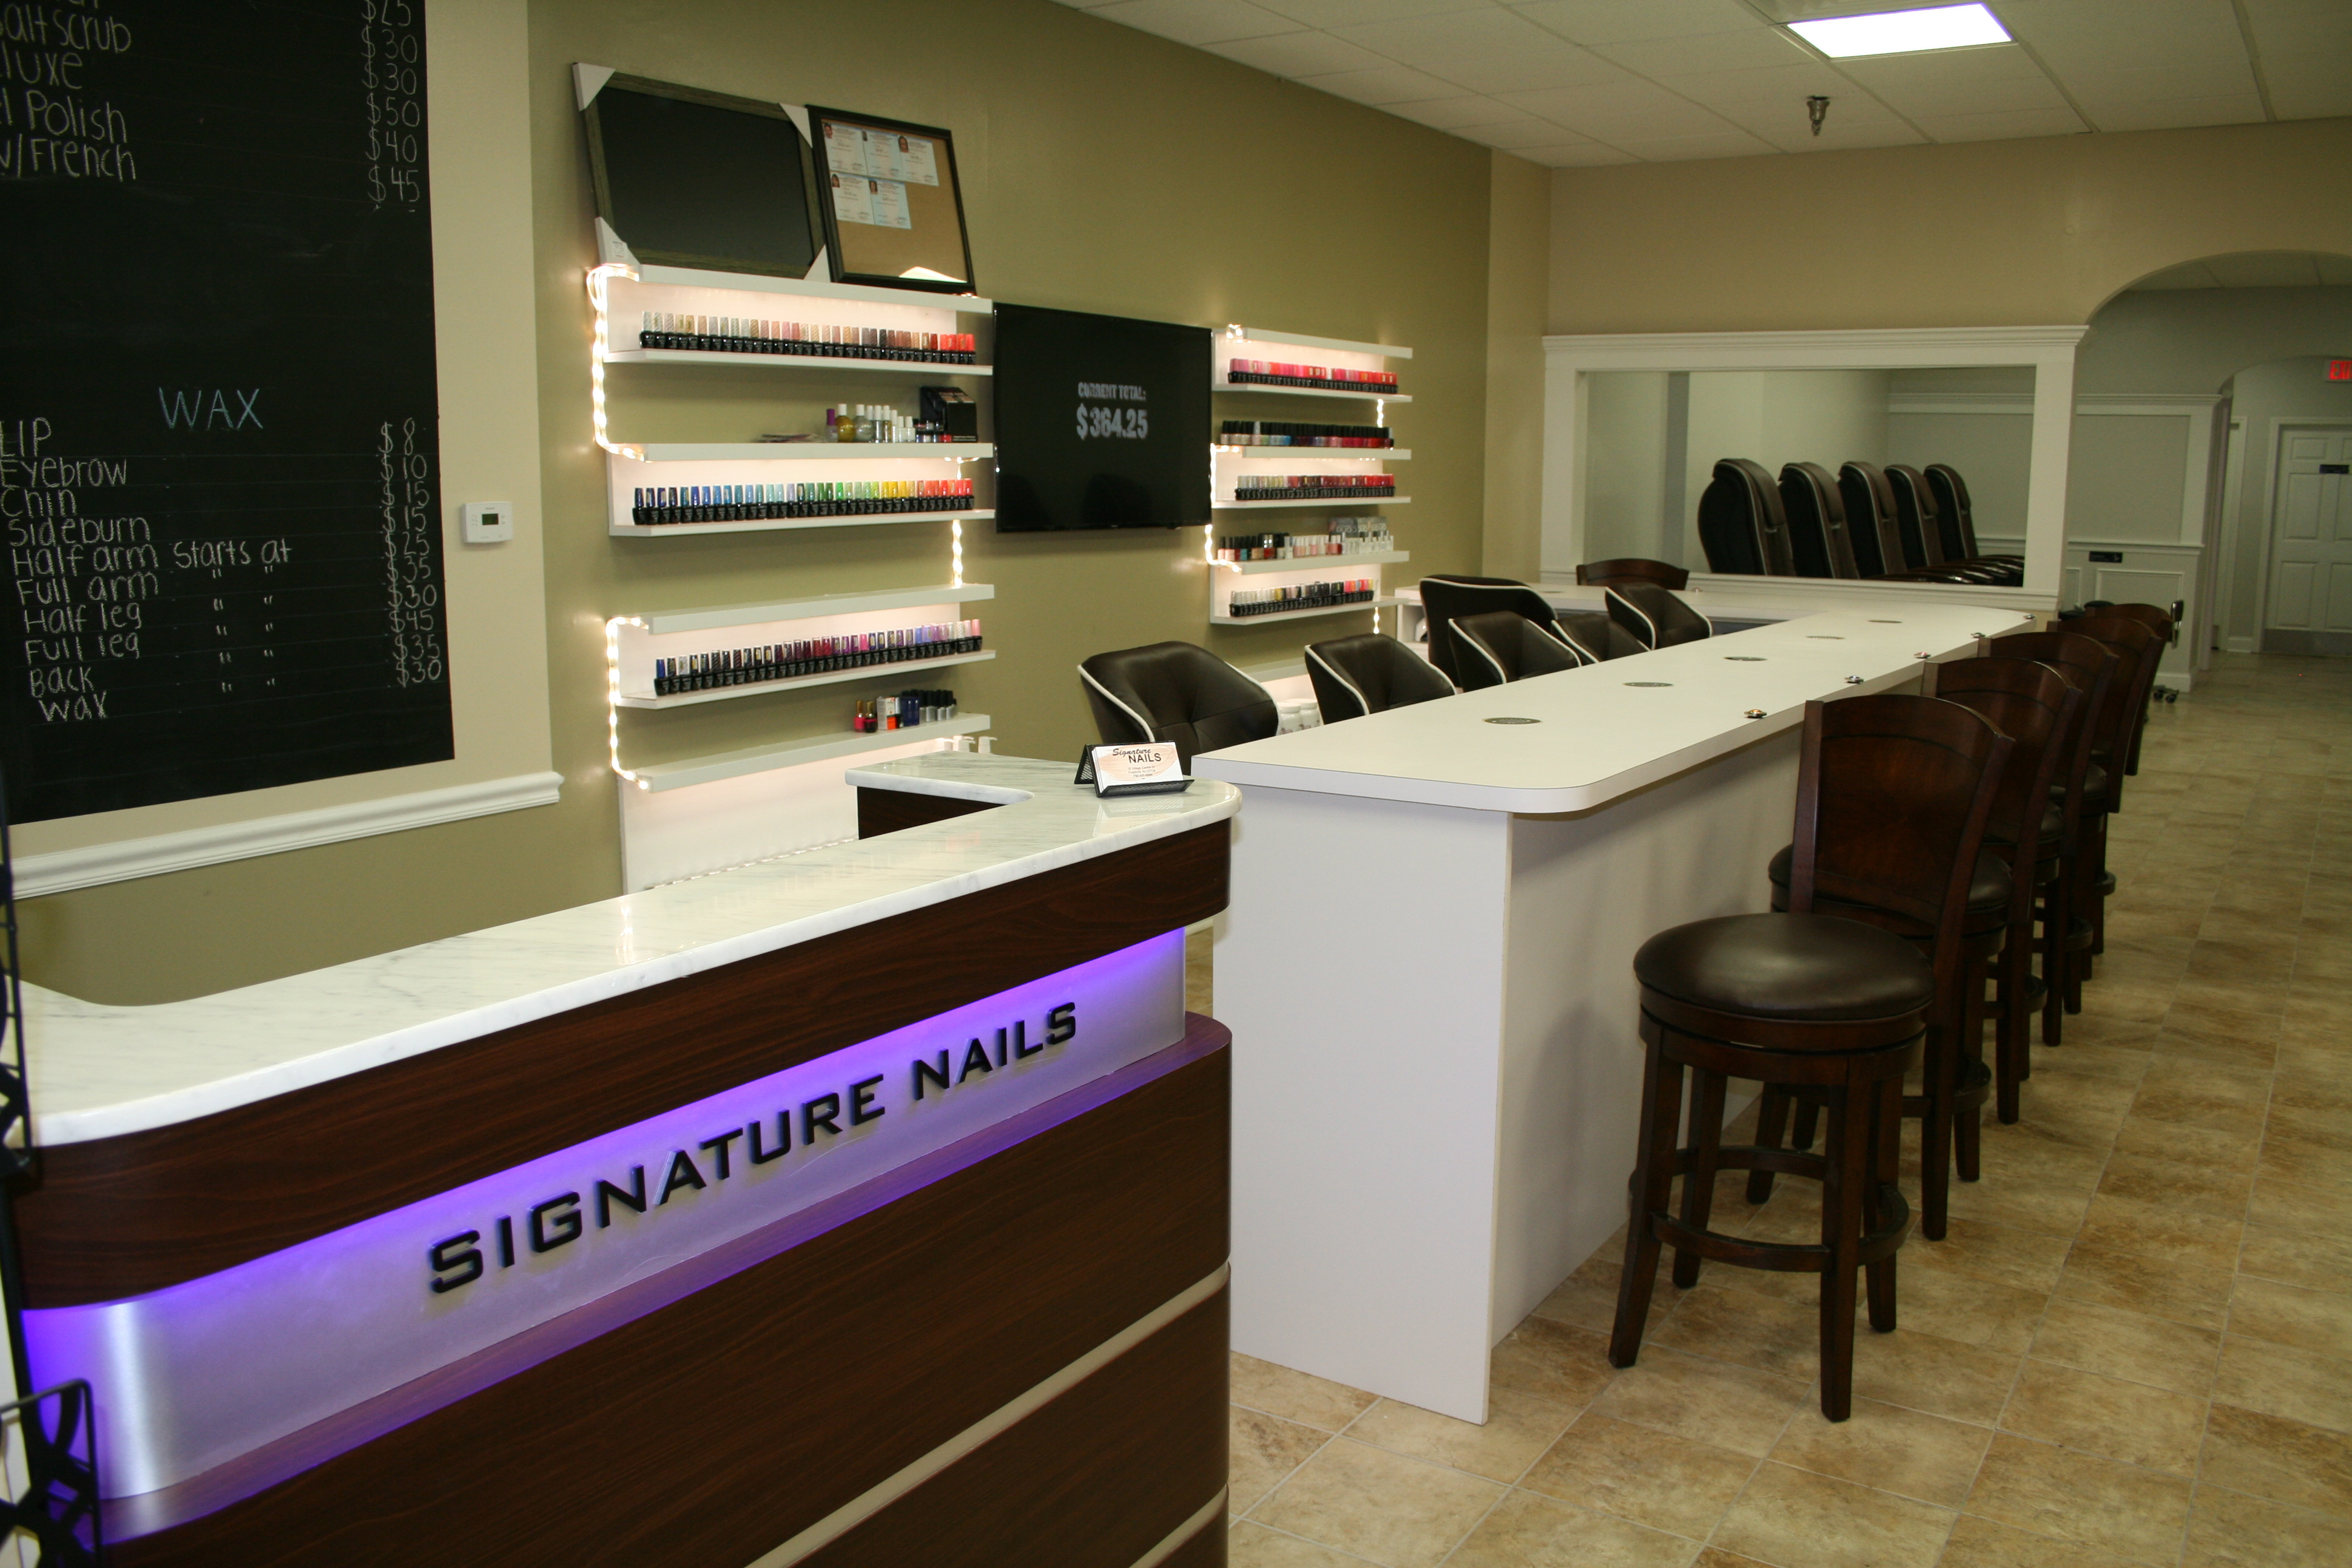 Superb Nail Salon Urbandale Most Popular Nail Design 2017 Gmtry Best Dining Table And Chair Ideas Images Gmtryco